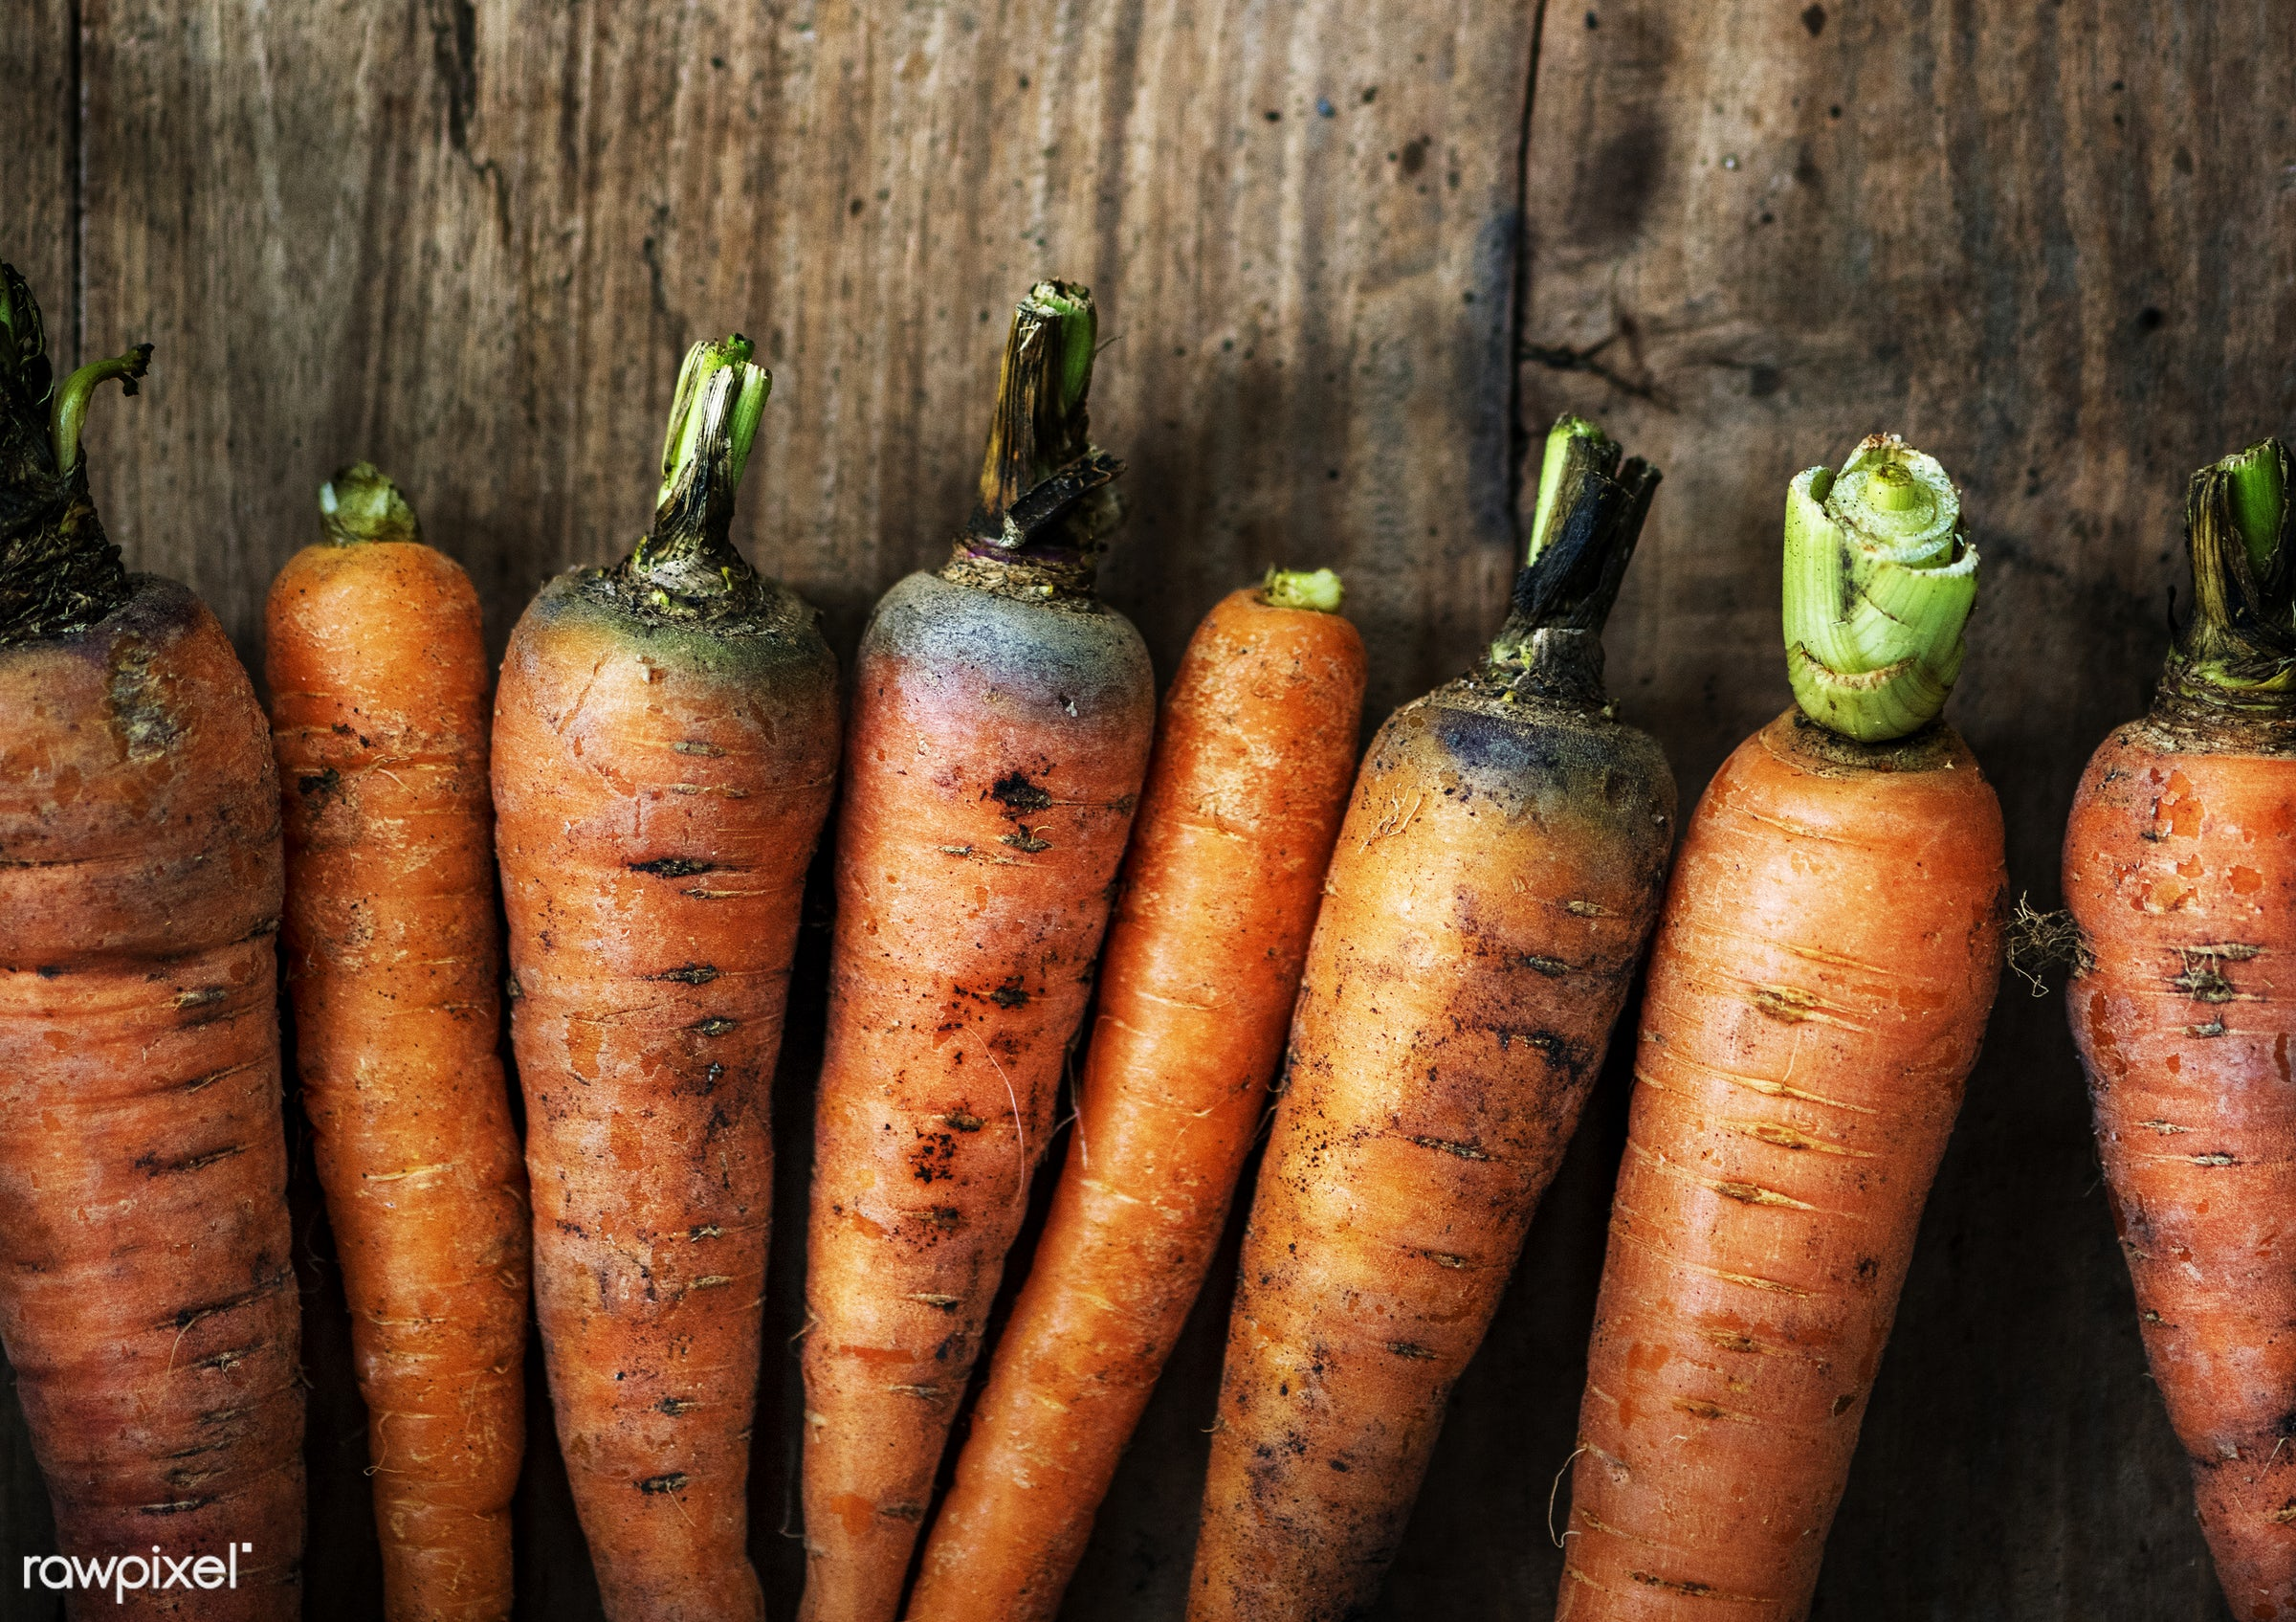 Carrots - raw, nobody, set, farm, ingredients, nature, fresh, wooden background, aerial view, dirt, products, closeup,...